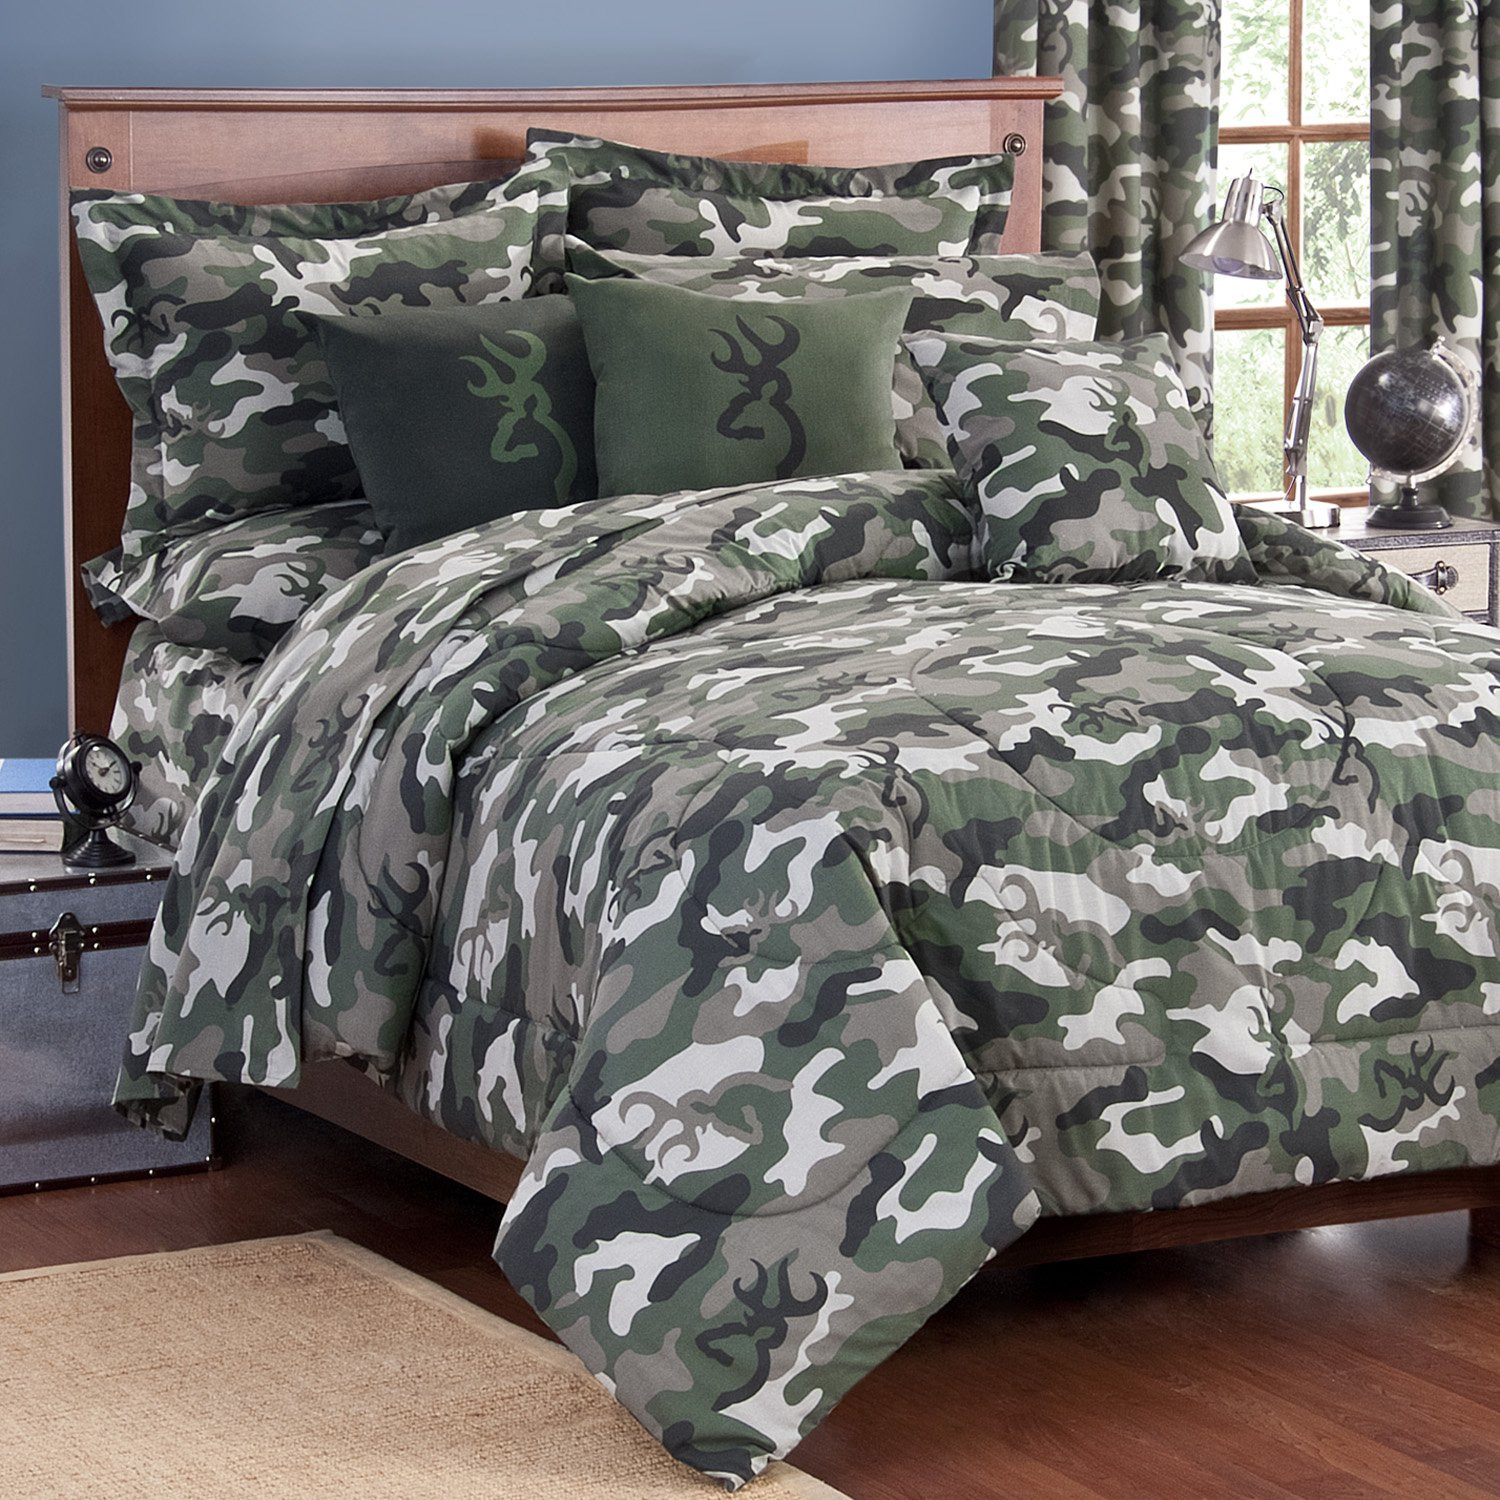 Military camouflage bedding totally kids totally for Camouflage bedroom ideas for kids